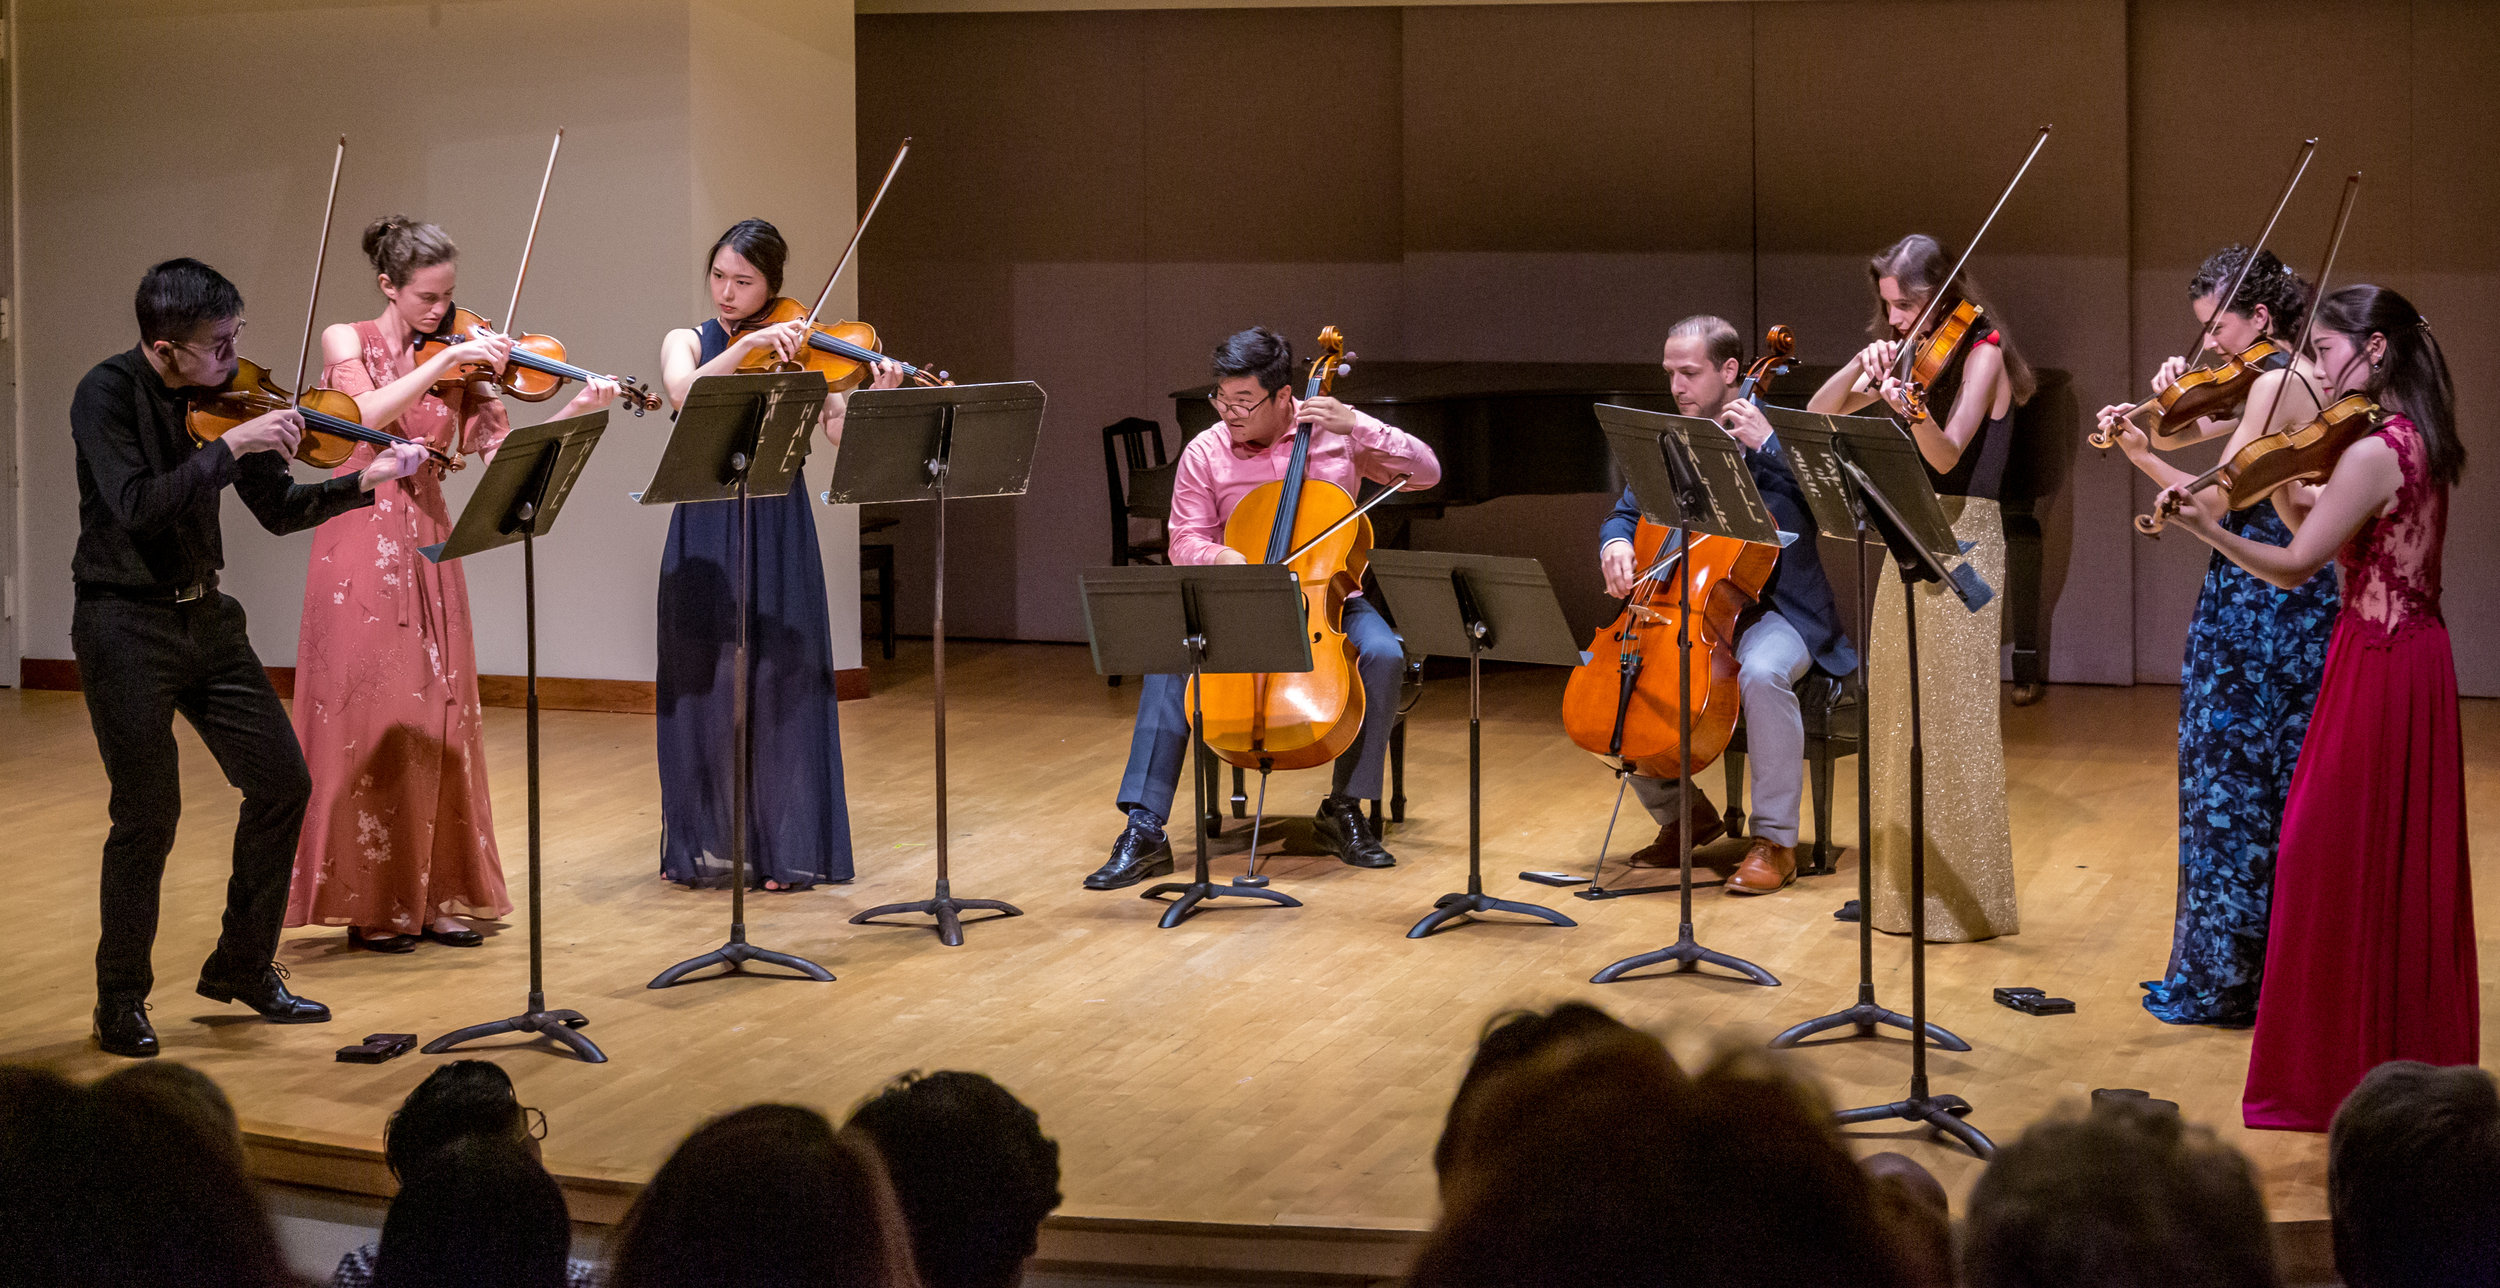 Andrew Wan, Katya Poplyansky, Sienna Minkyong Cho, Alessia Disimino, violins; Minkyoung Lee, Georgina Rossi, violas, Jaeyoung Chong, Andrew Ascenzo, cellos.  Photo Credit: James Ireland